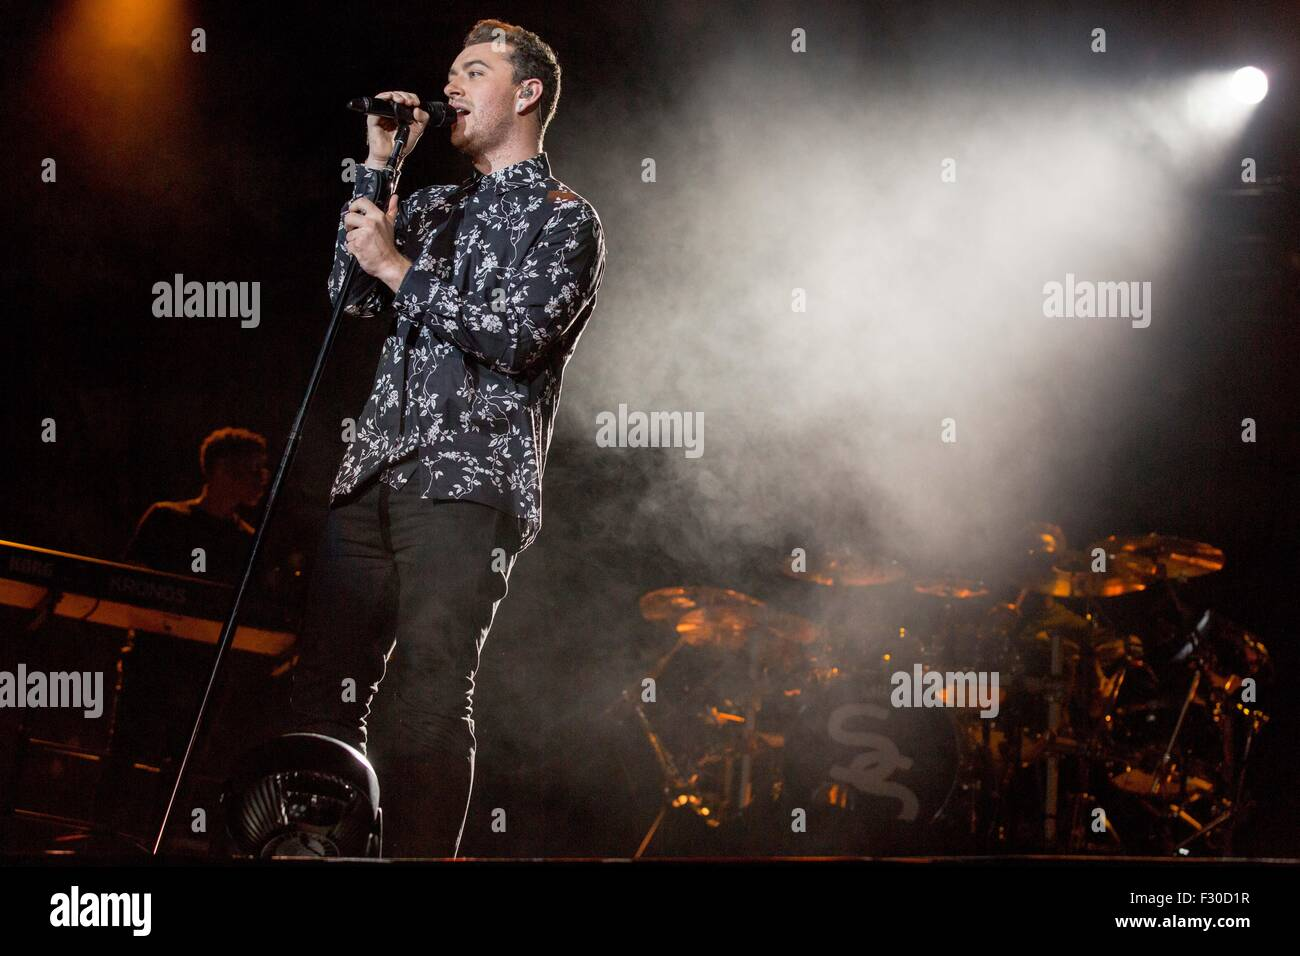 Chicago, Illinois, USA. 1st Aug, 2015. Singer SAM SMITH performs live in Grant Park at the Lollapalooza Music Festival - Stock Image